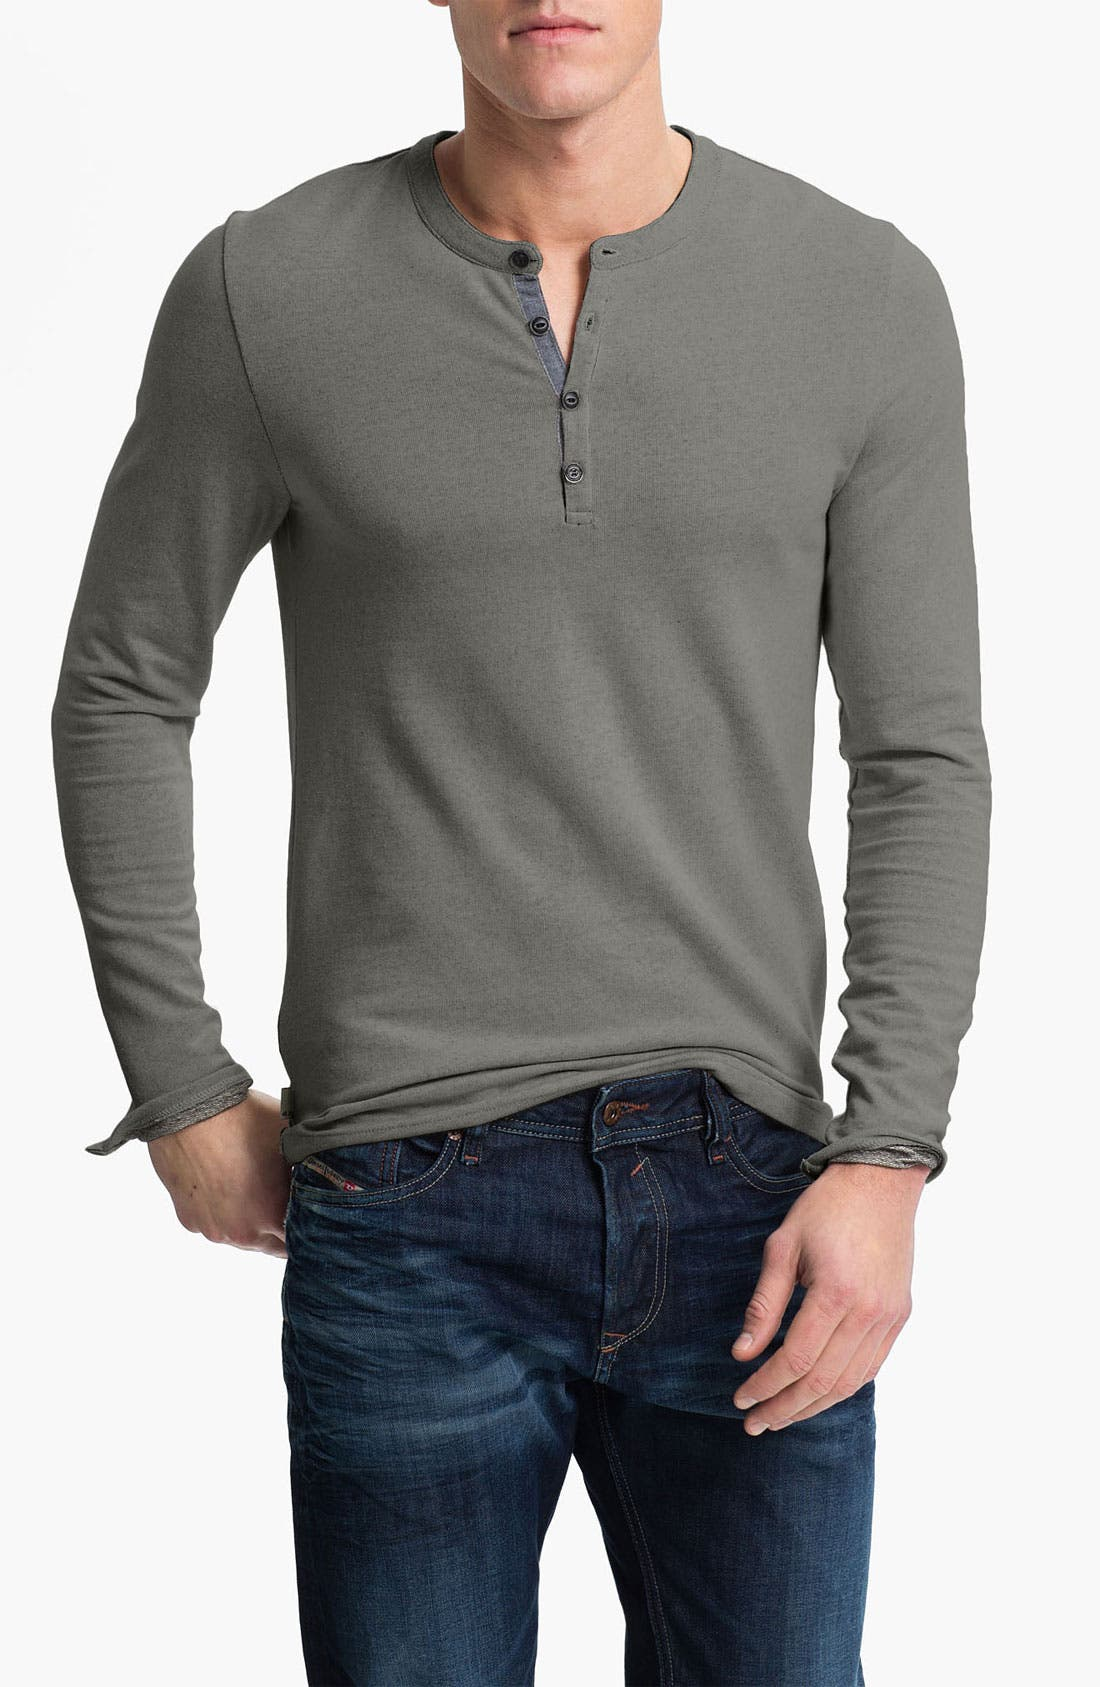 Main Image - R44 Rogan Standard Issue Henley Sweatshirt